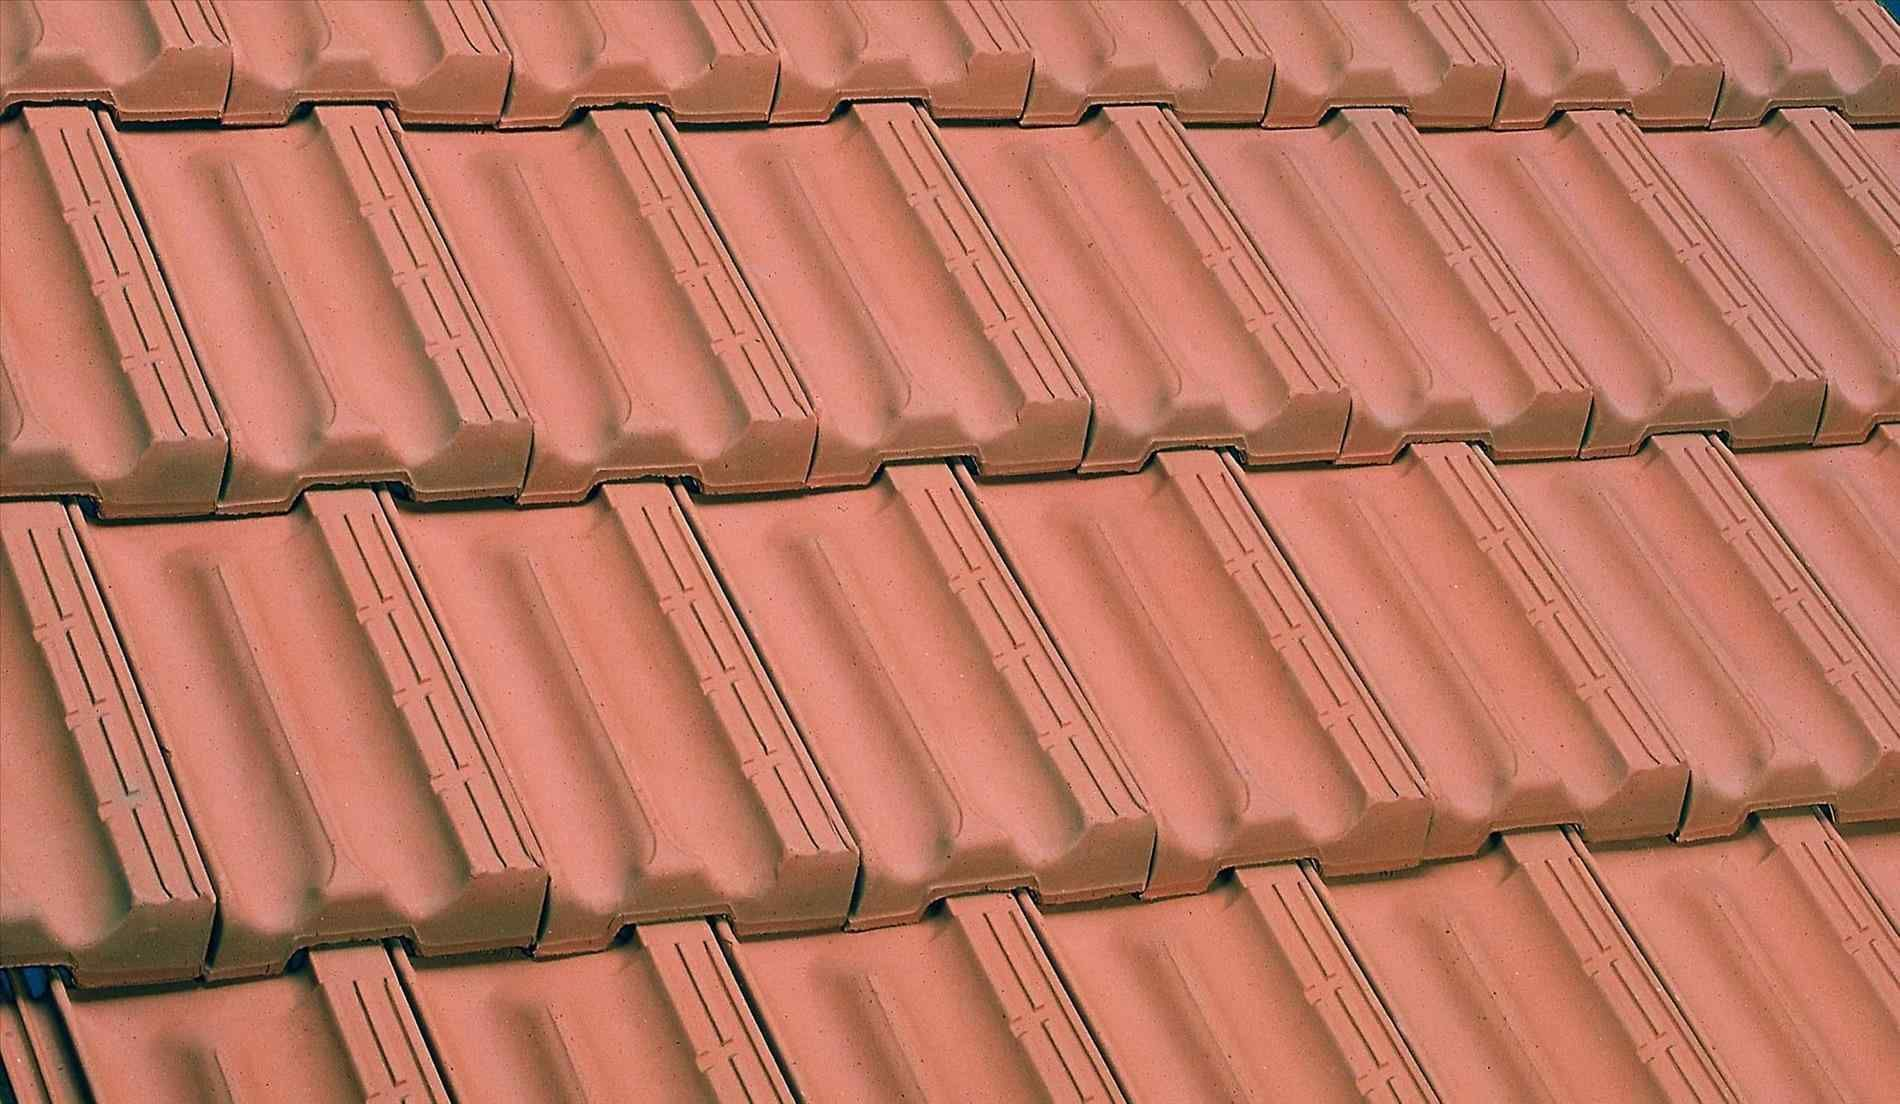 New Terracotta Roof Tiles Installation At Xxbb821 Info Terracotta Roof Tiles Roof Repair Roof Repair Cost